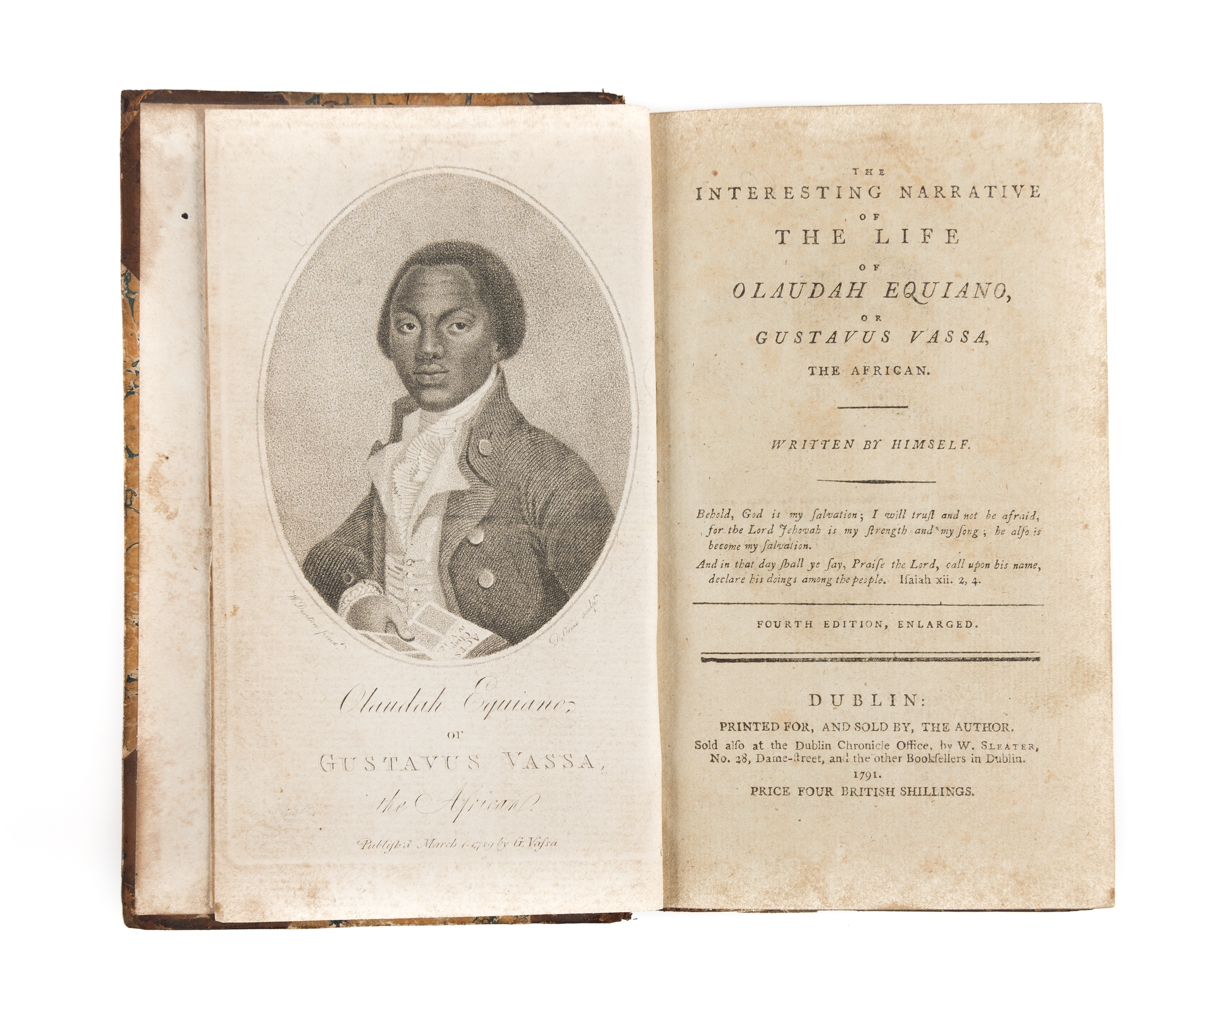 Interesting Narrative of the Life of Olaudah Equiano - Dublin 1791